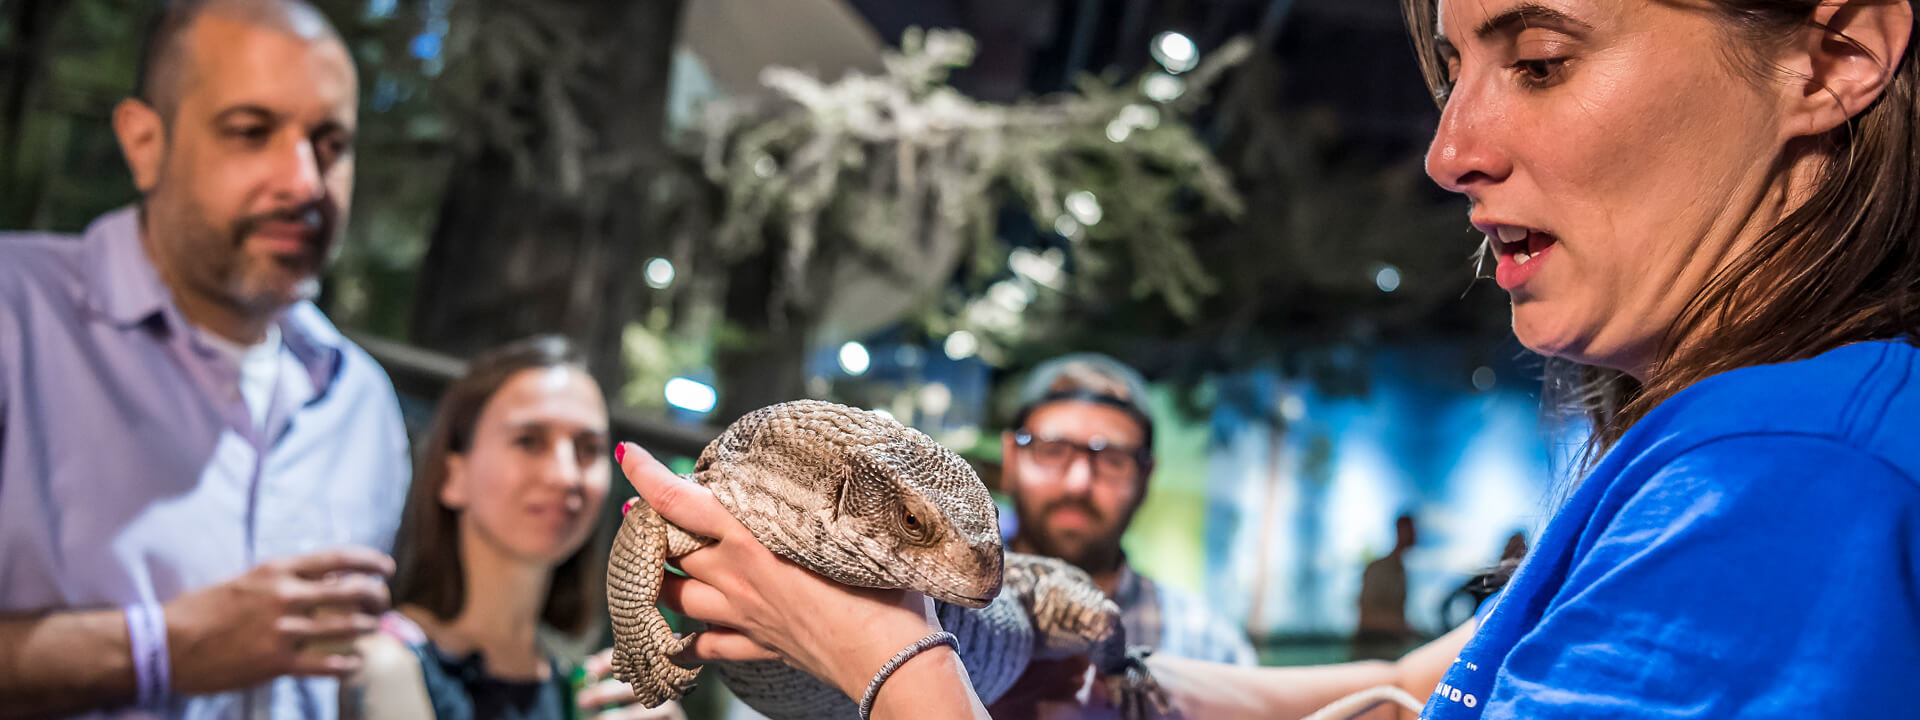 A small group of adults enjoying an animal encounter together in the NatureWorks exhibit.